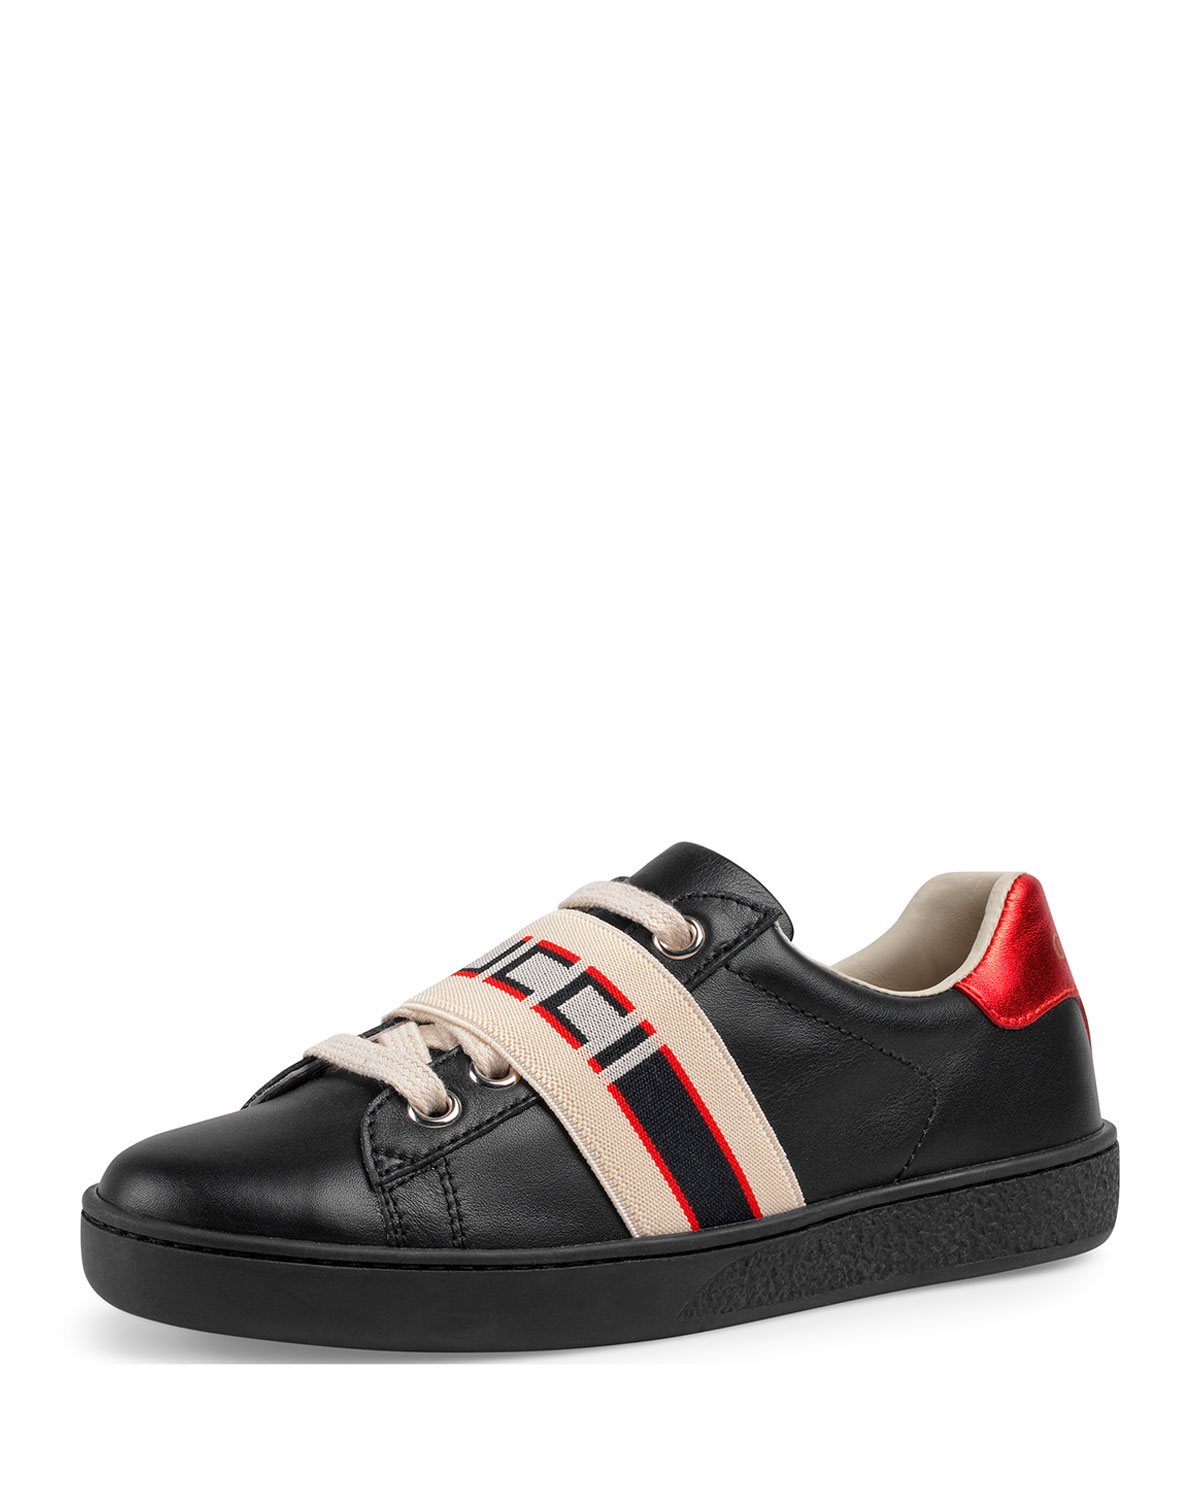 44081dc1ab3 Gucci New Ace Gucci Band Leather Sneaker